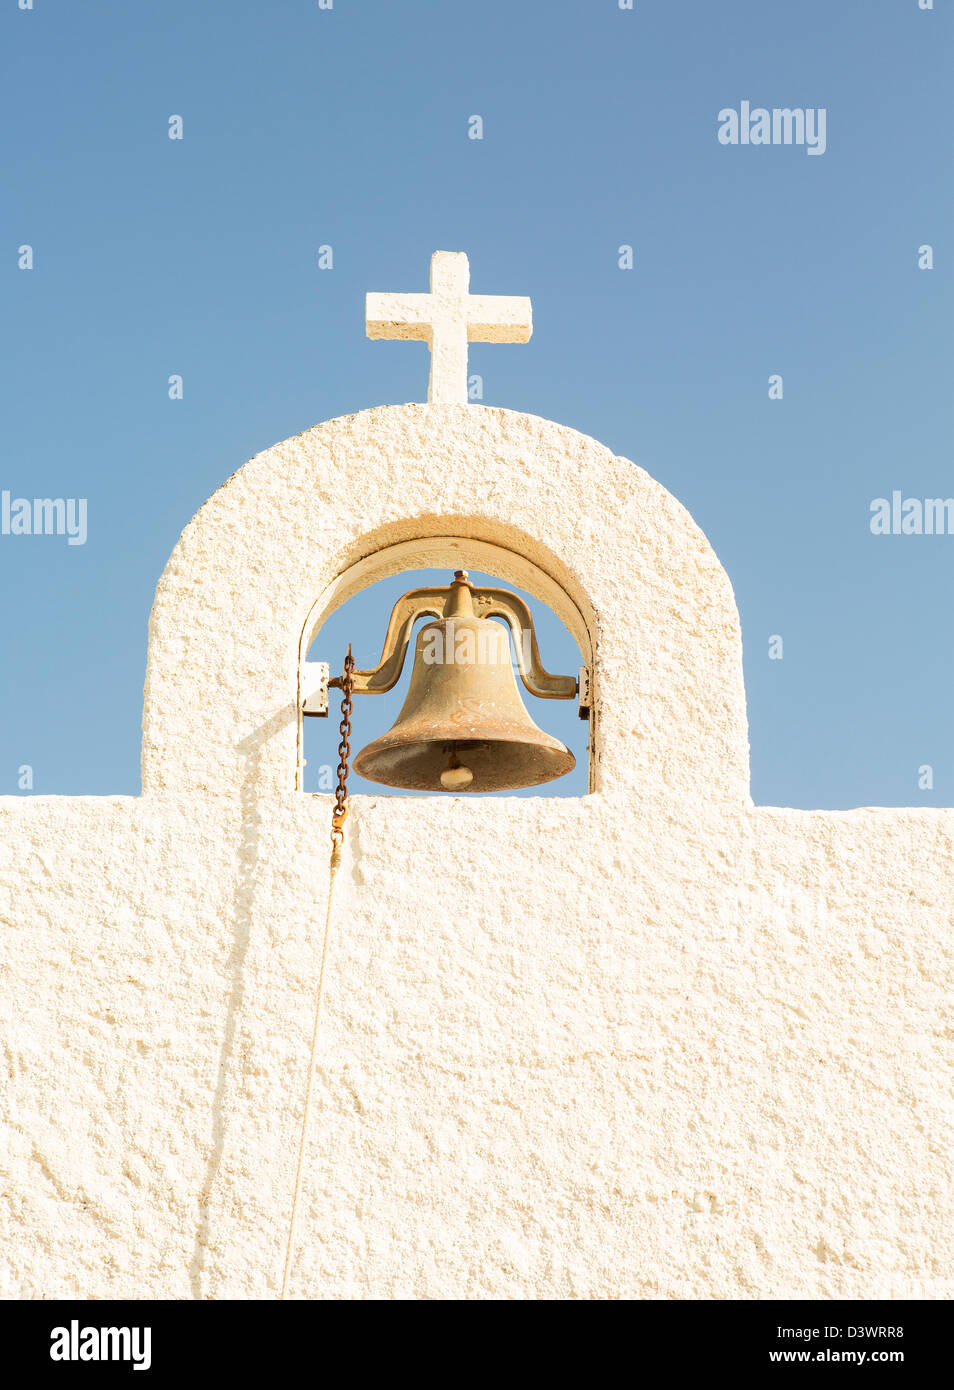 The mission bell on the Santa Maria y San Jose Mission, Lajitas, TX - Stock Image